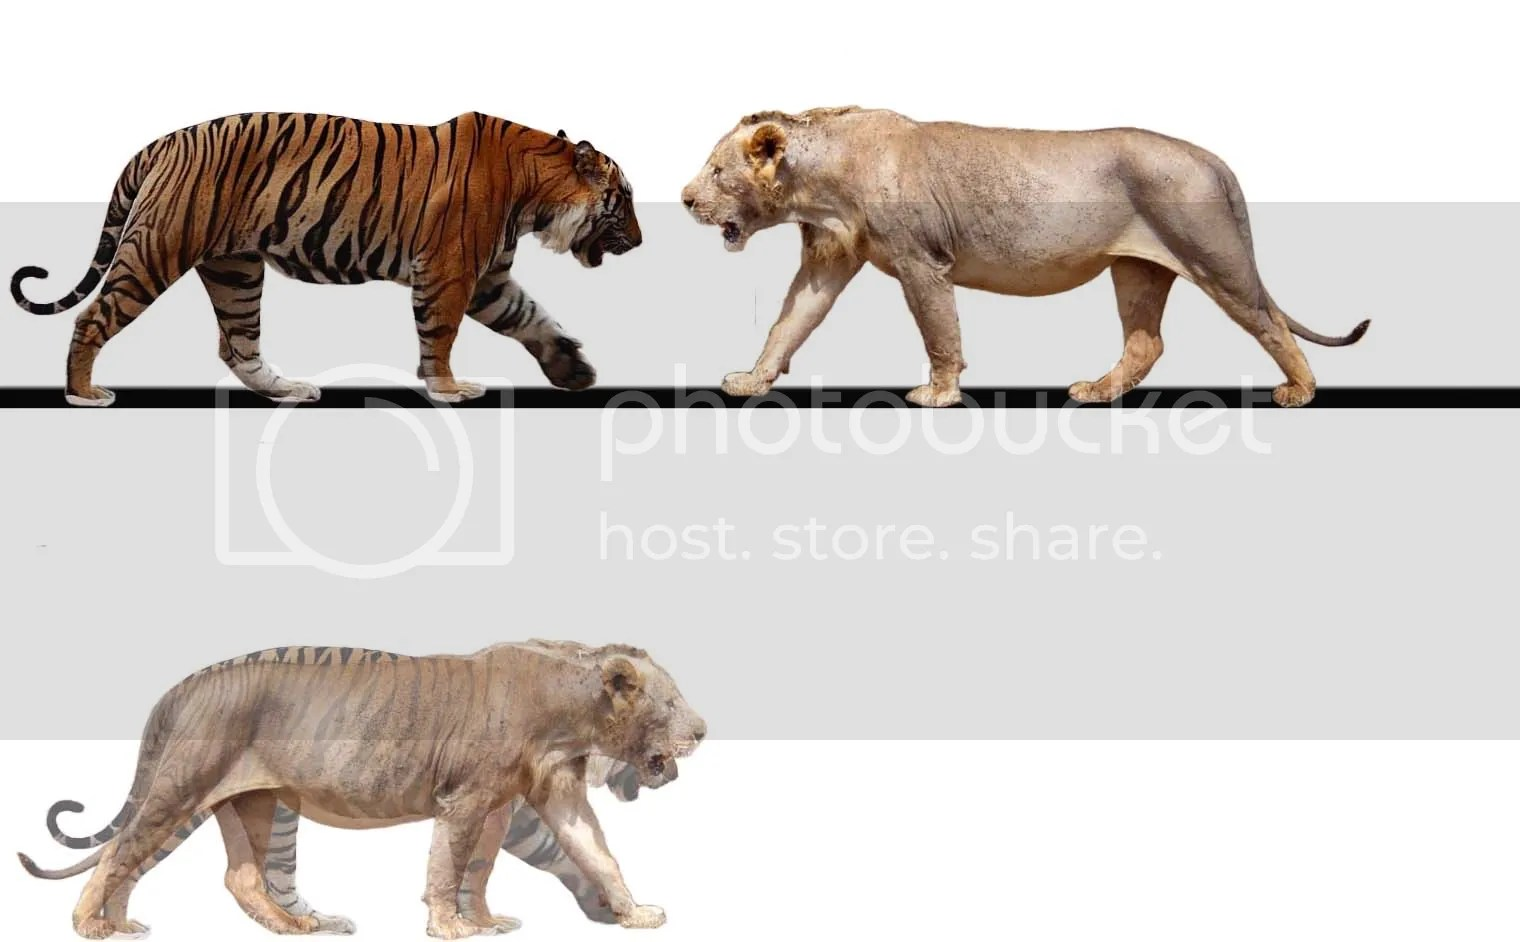 Muscularity And Upper And Tigress Lion And Lioness Comparison Tiger Forelimb